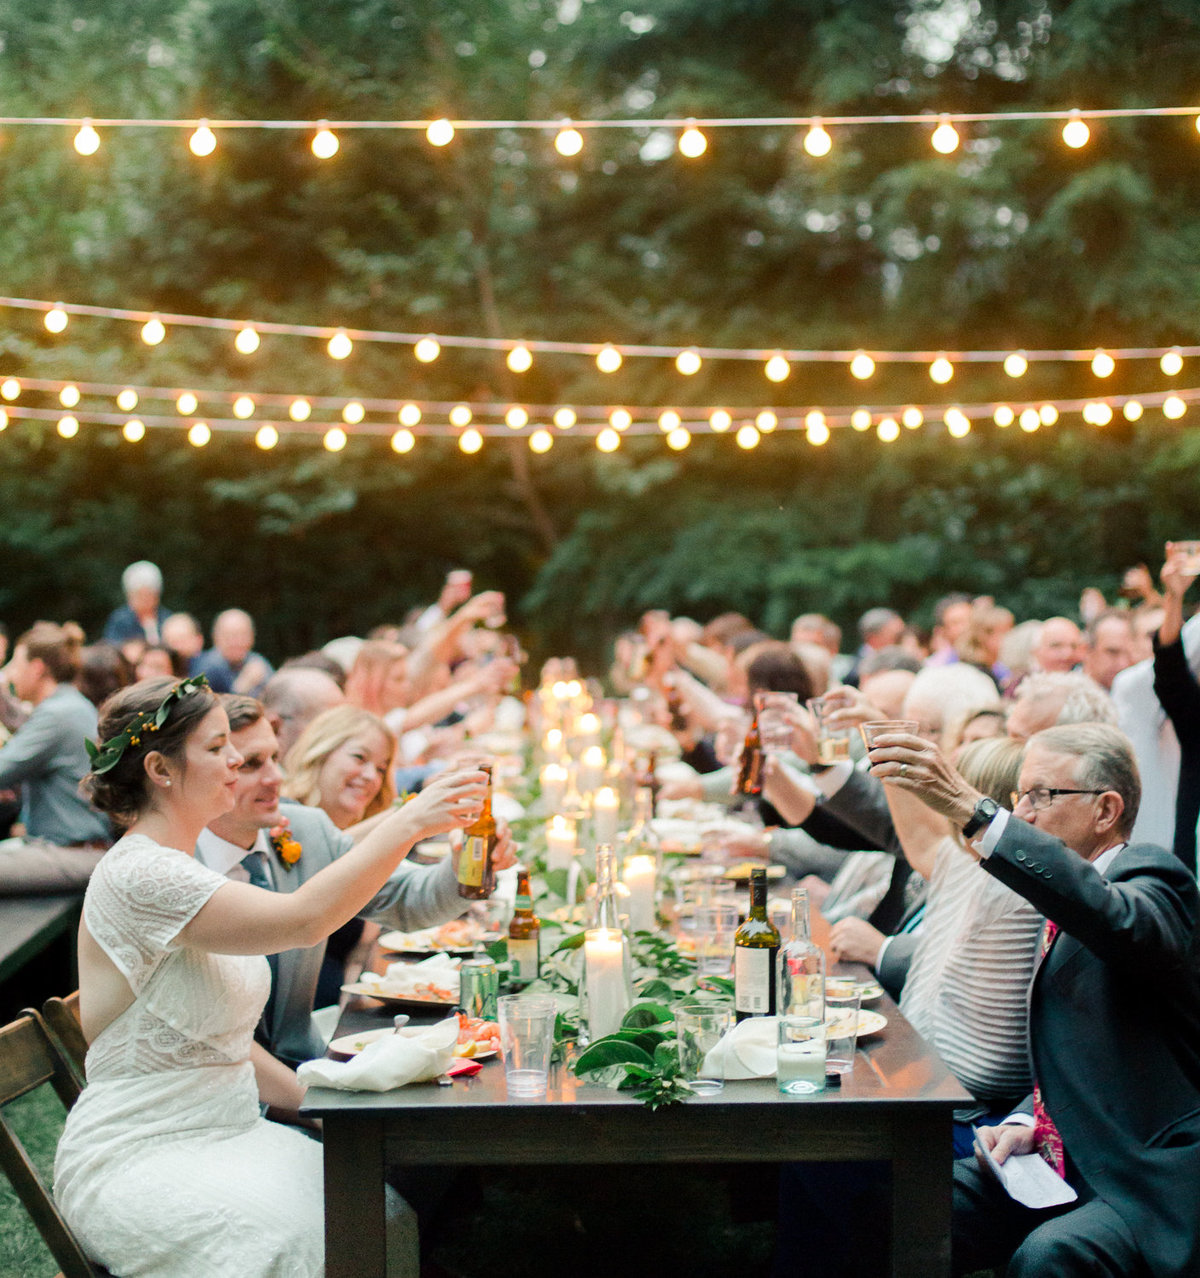 cheers of wedding reception table after speeches outdoor wedding under cafe lights wellspring spa washington